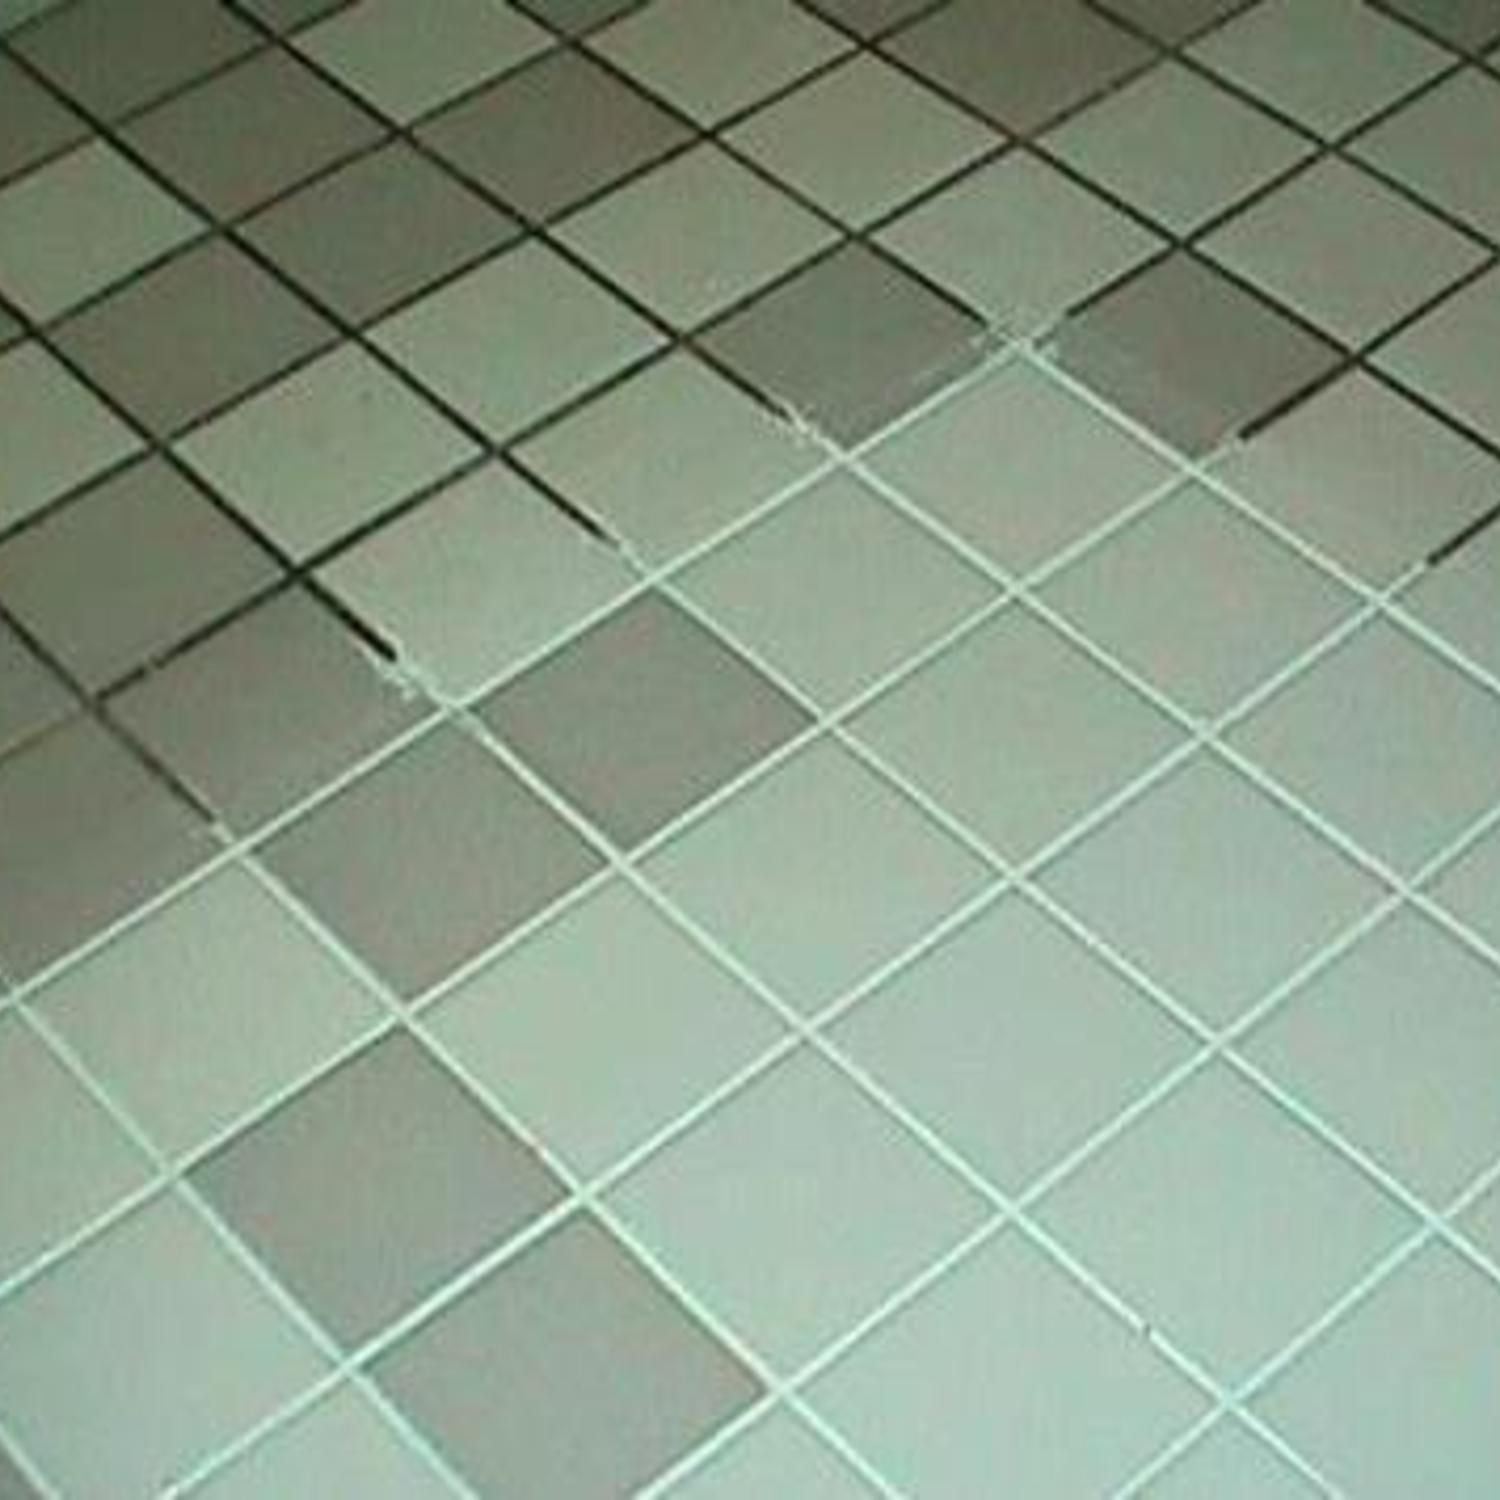 Diy Grout Cleaner Recipe